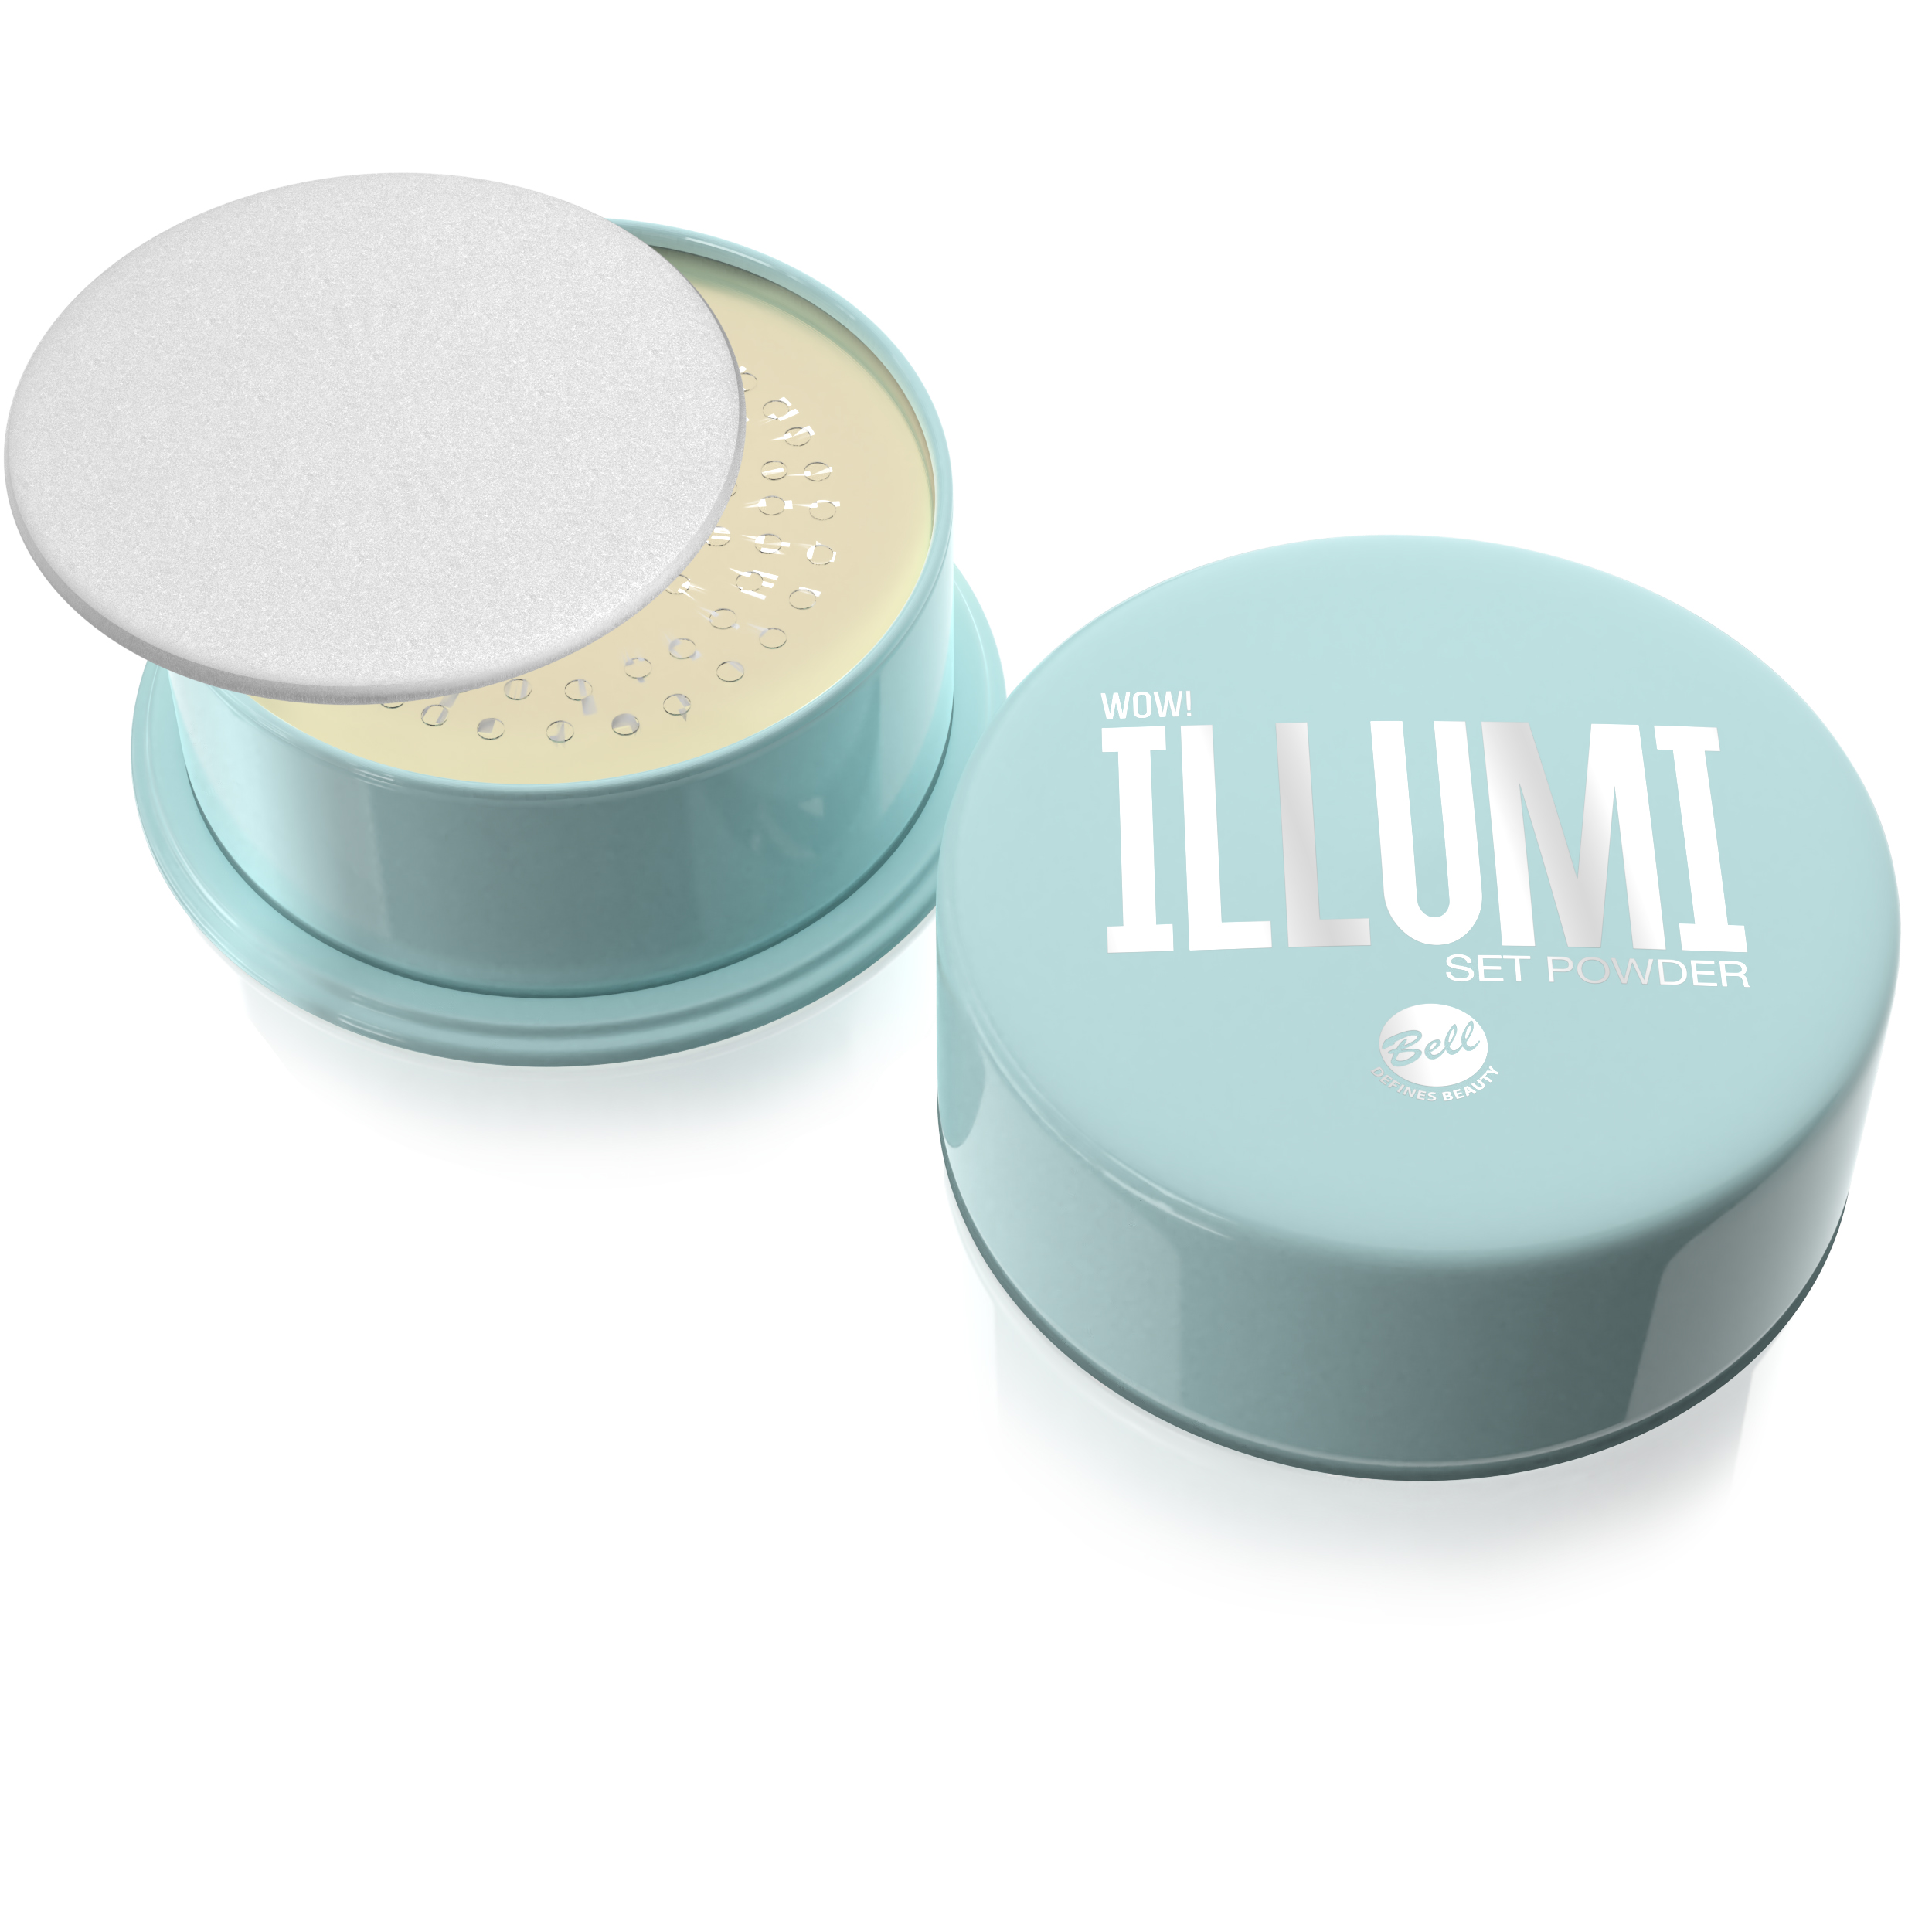 Wow! Illumi Set Powder